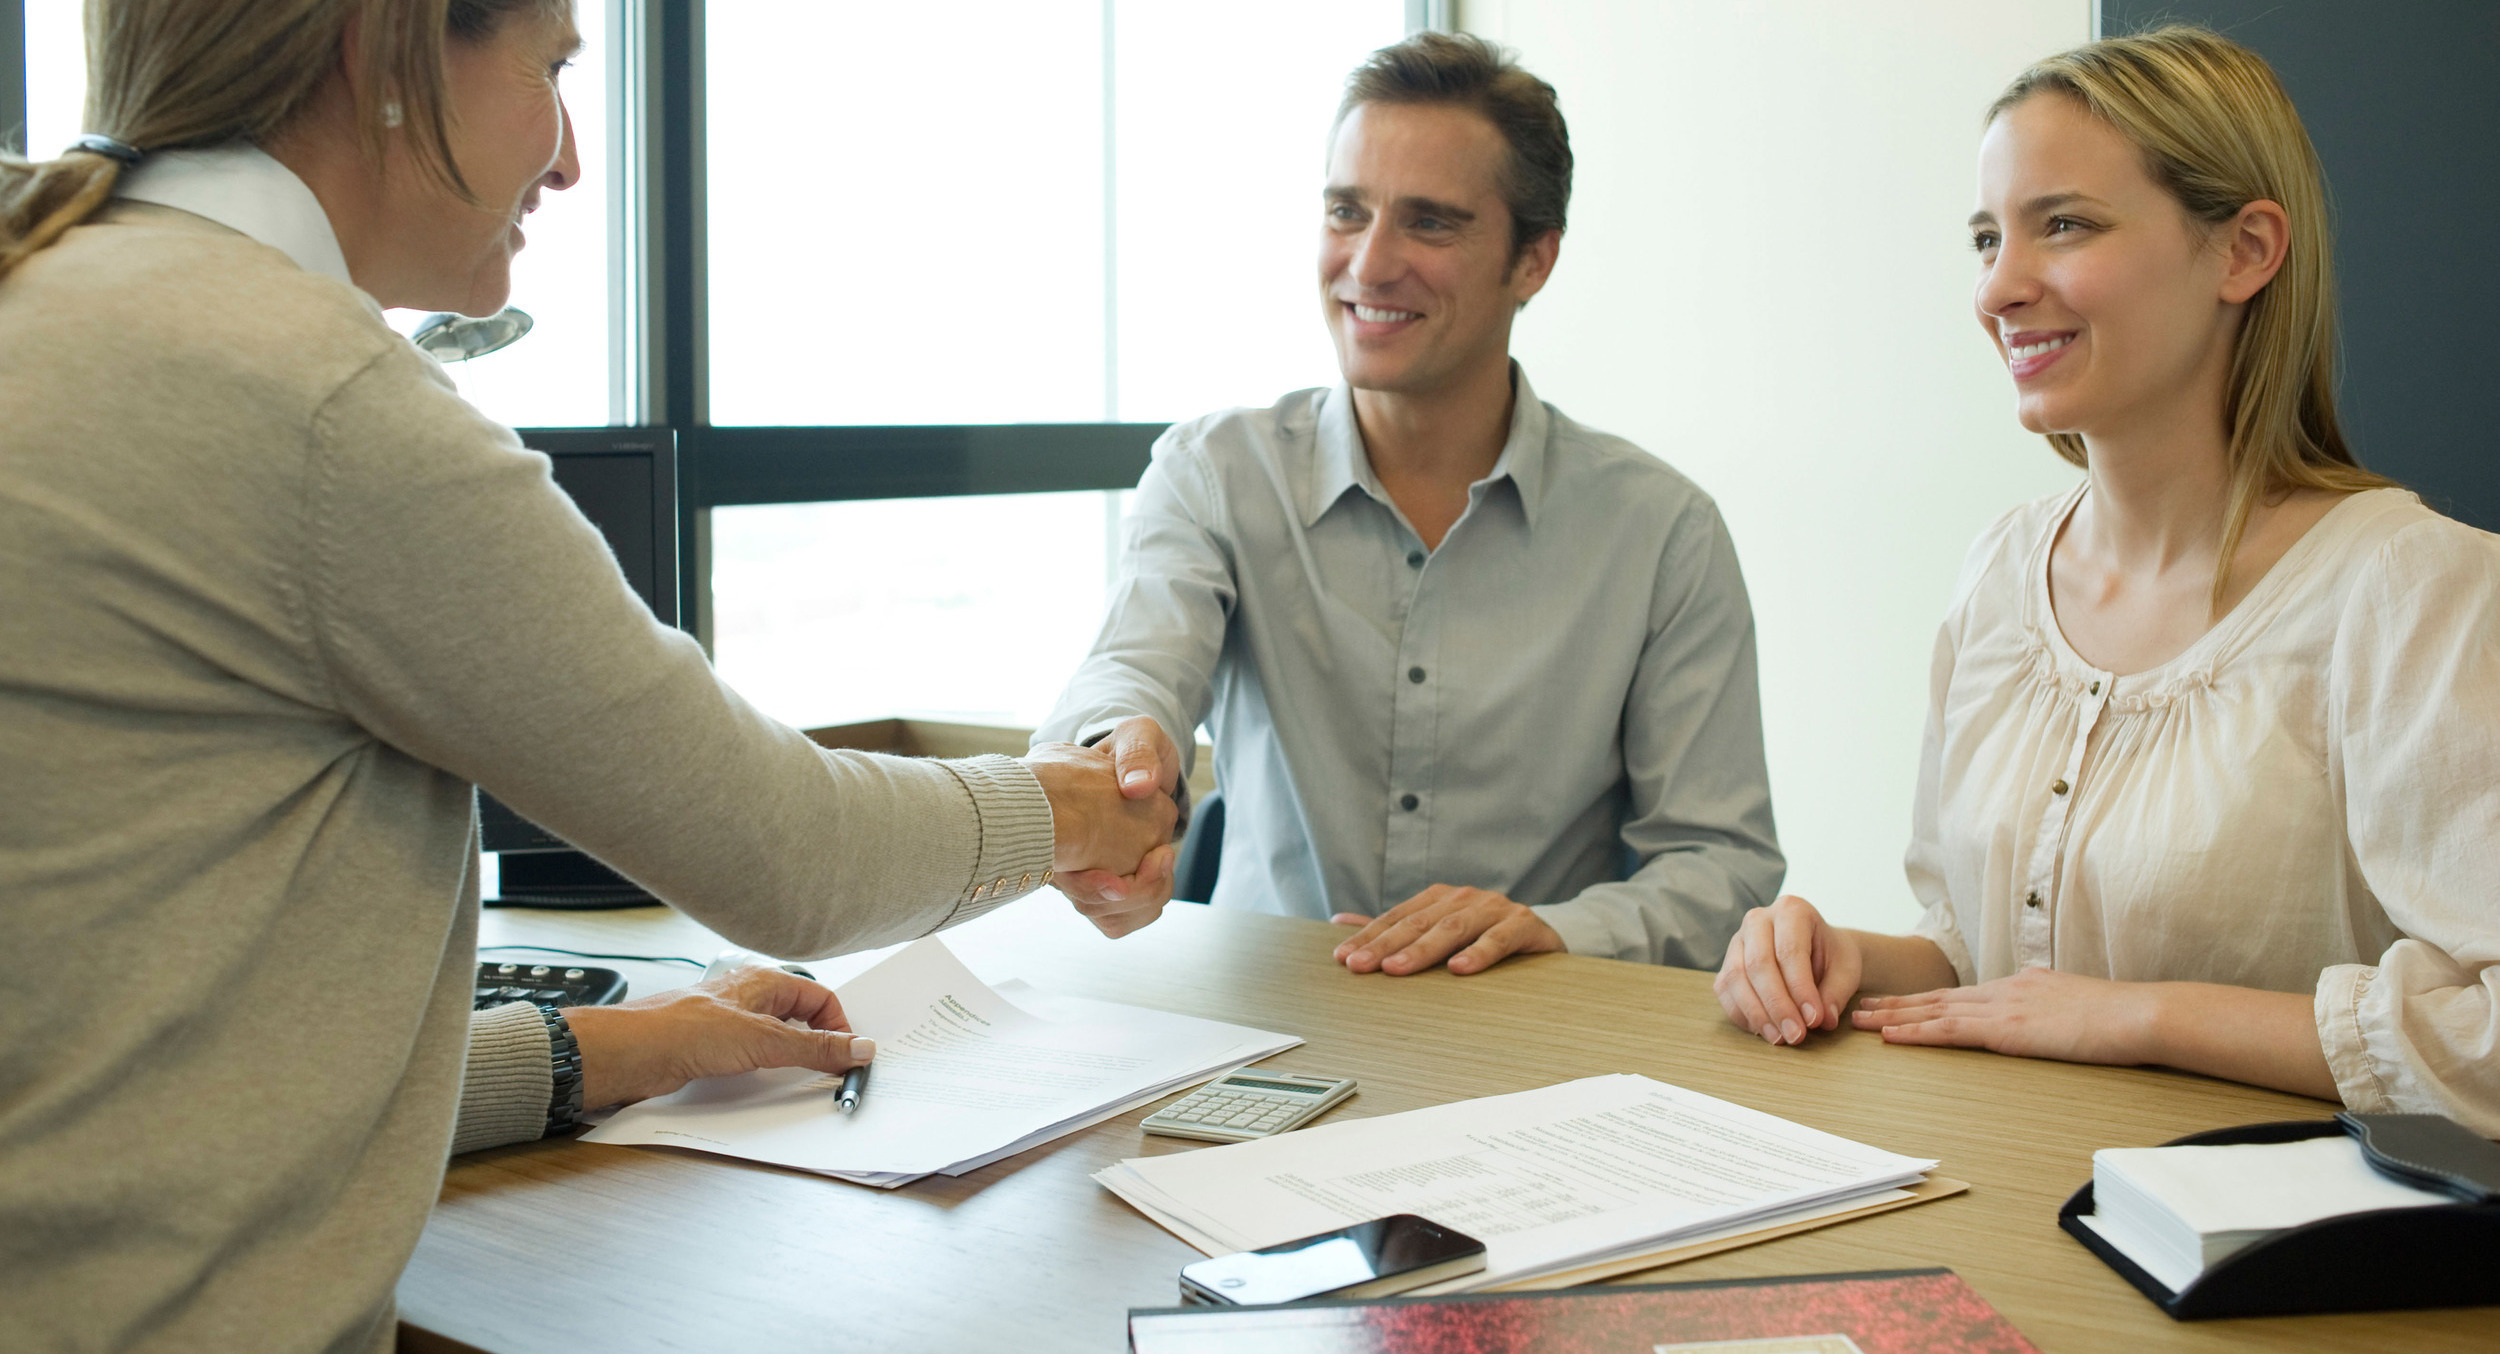 ccbm9f-couple-shaking-hands-with-businesswoman-in-office-cli-2